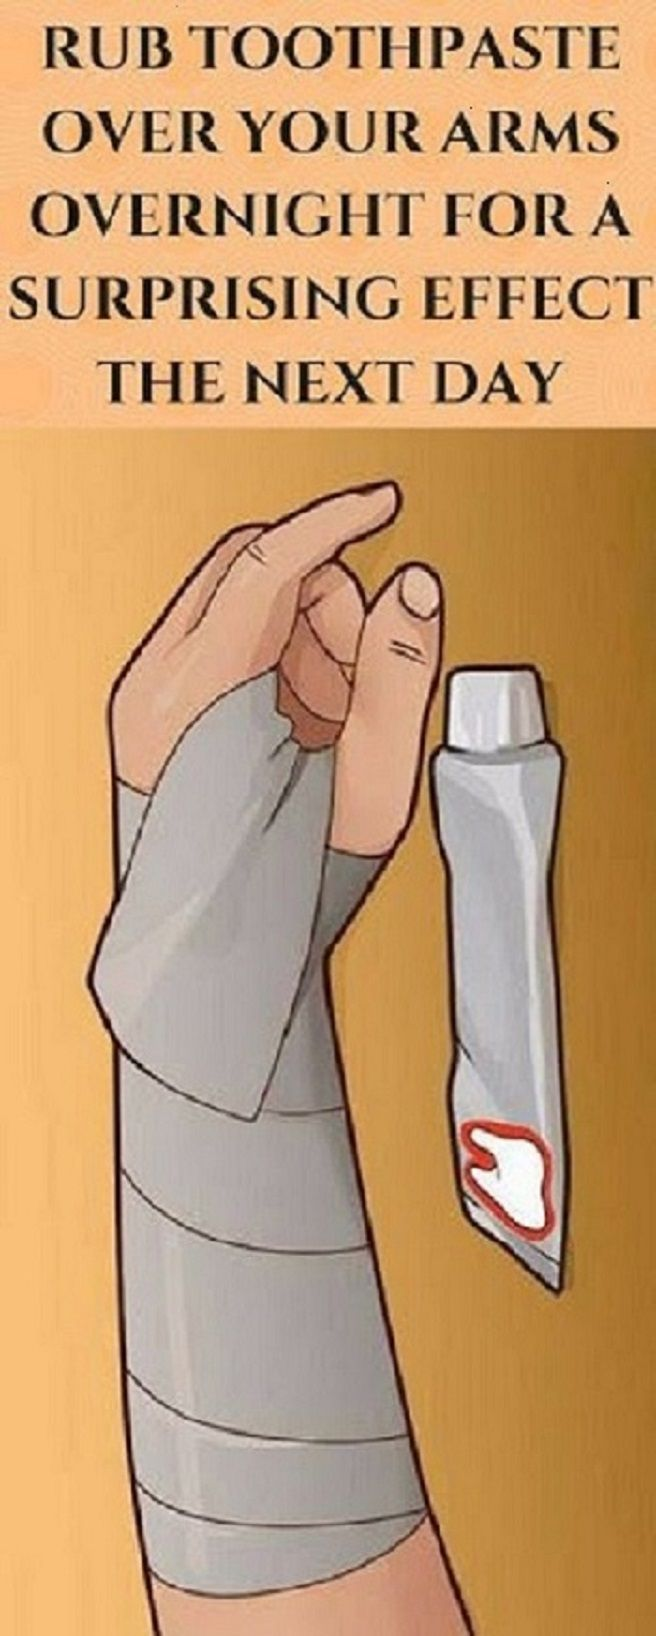 RUB TOOTHPASTE OVER YOUR ARMS OVERNIGHT FOR A SURPRISING EFFECT THE NEXT DAY